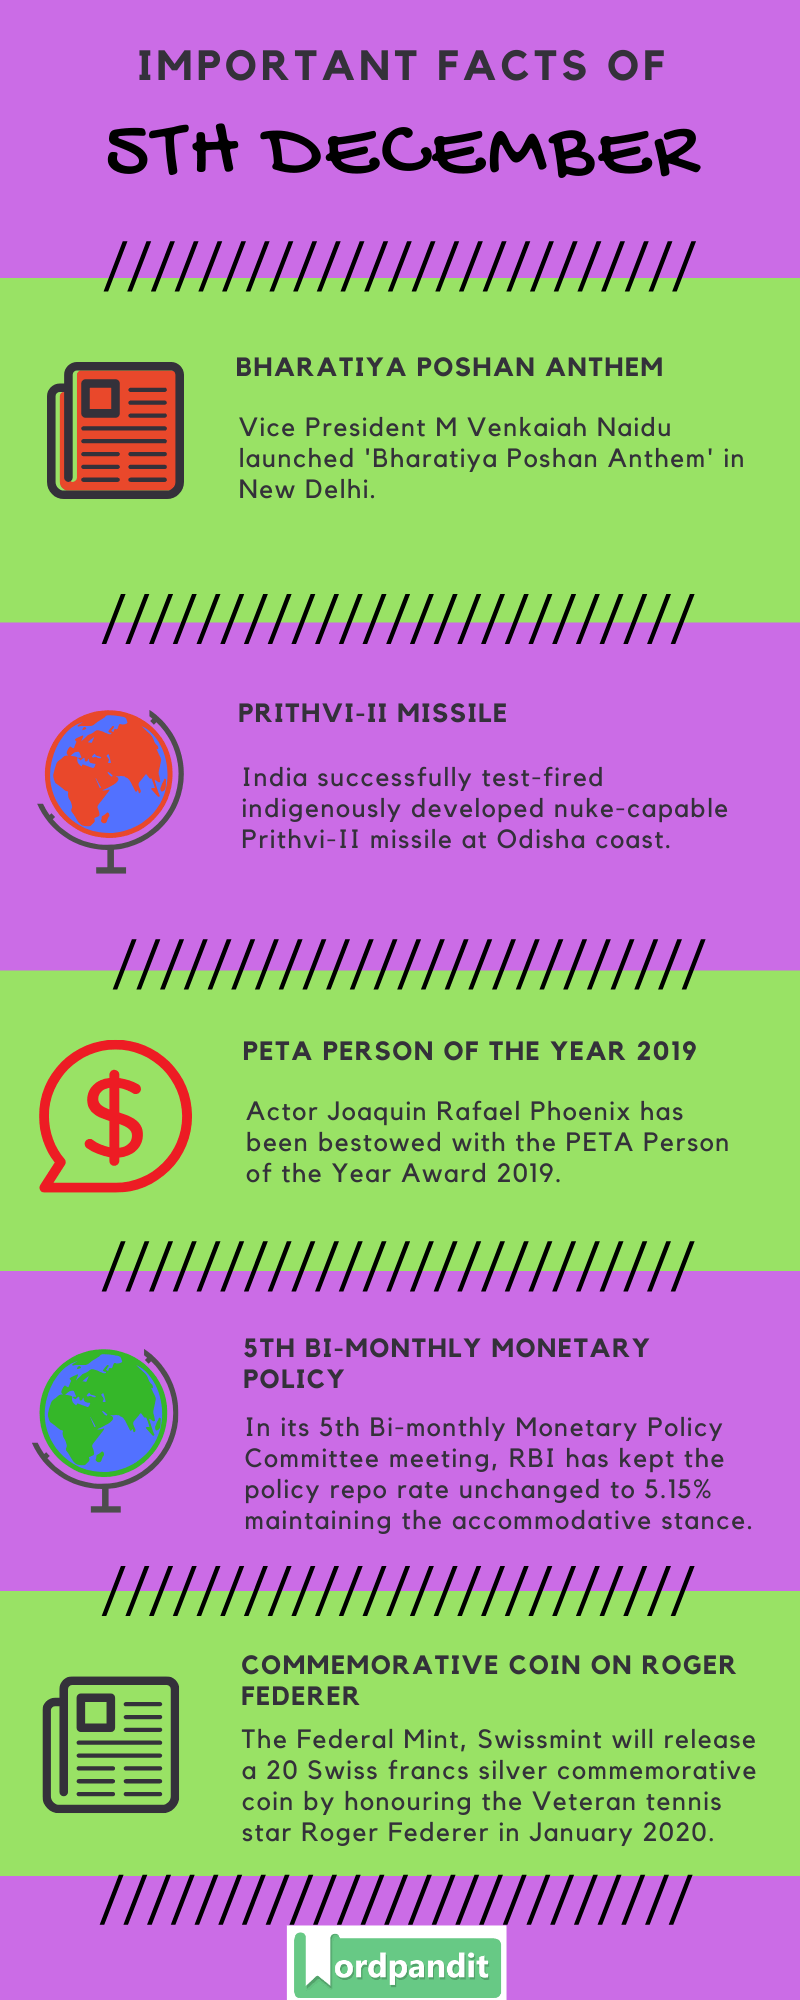 Daily Current Affairs 5 December 2019 Current Affairs Quiz 5 December 2019 Current Affairs Infographic